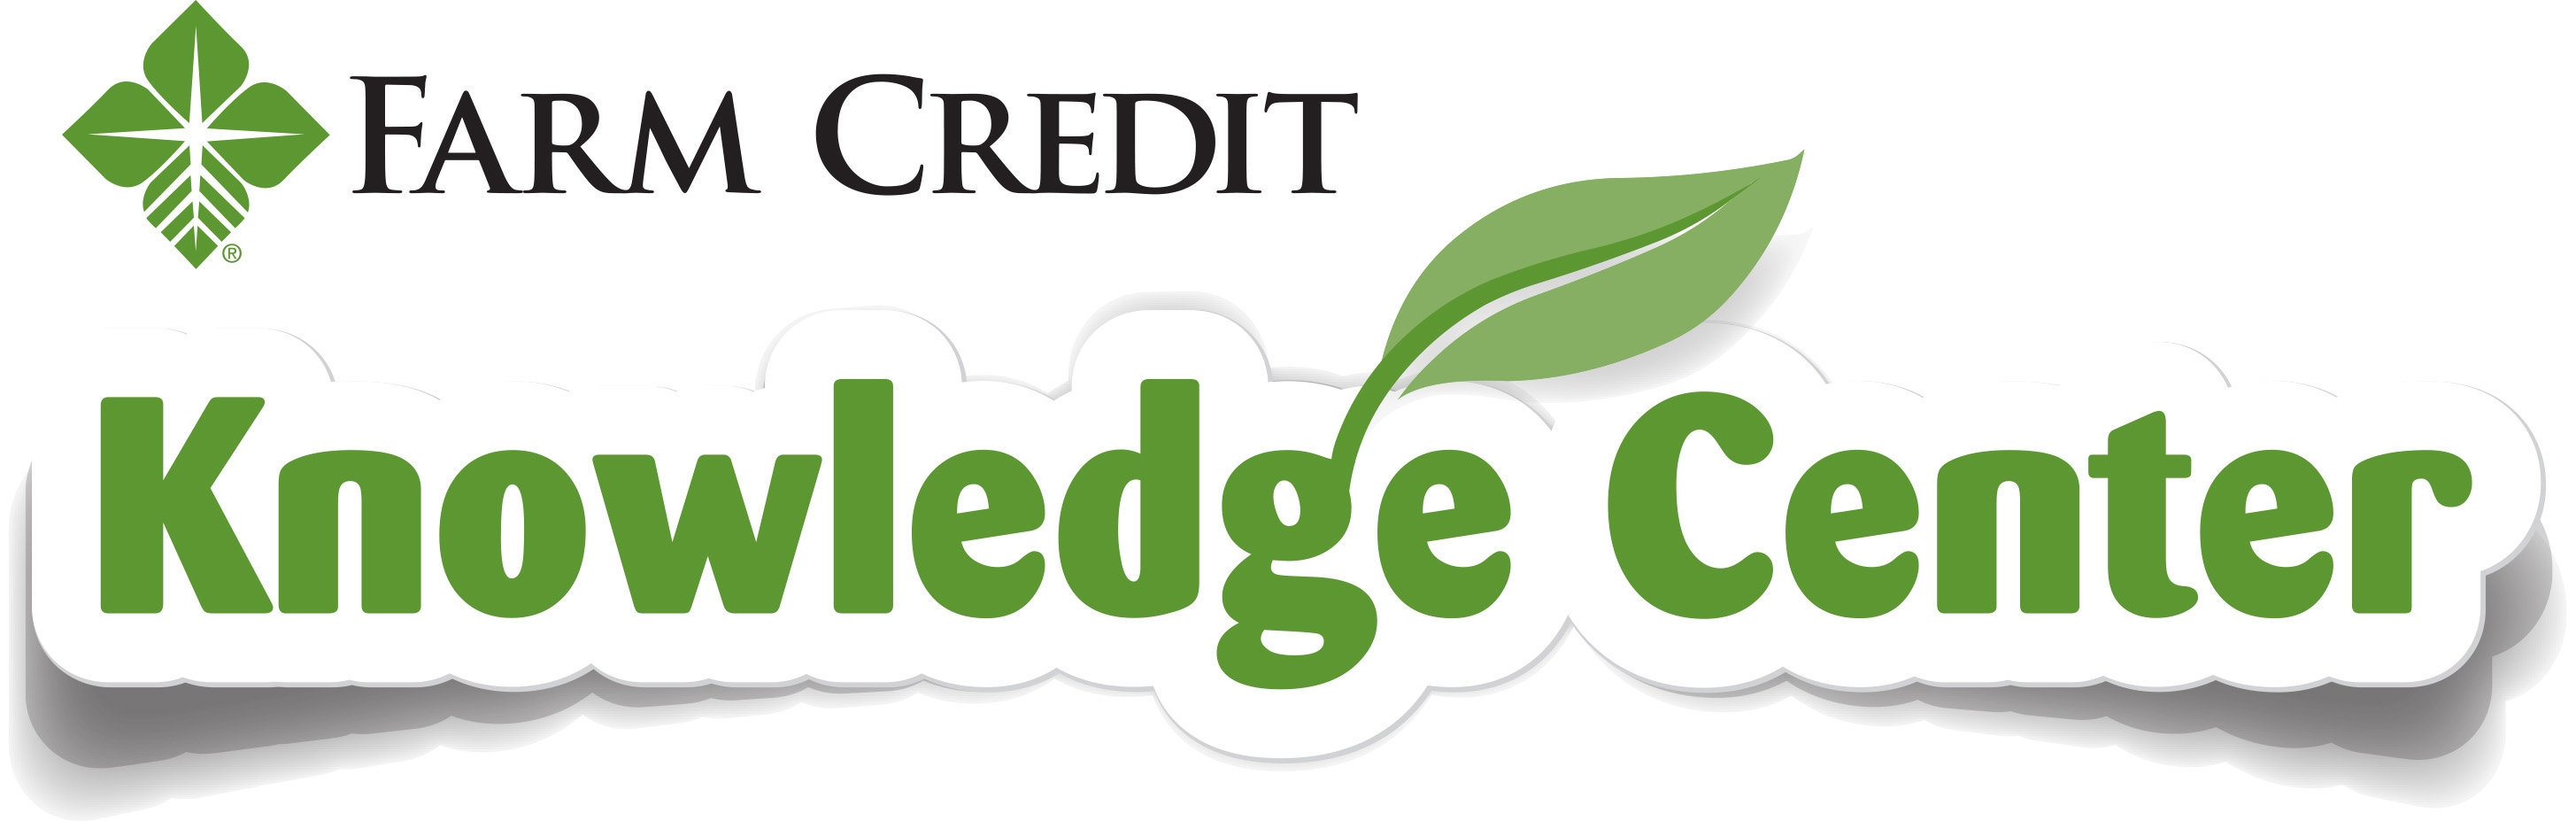 Farm Credit Knowledge Center